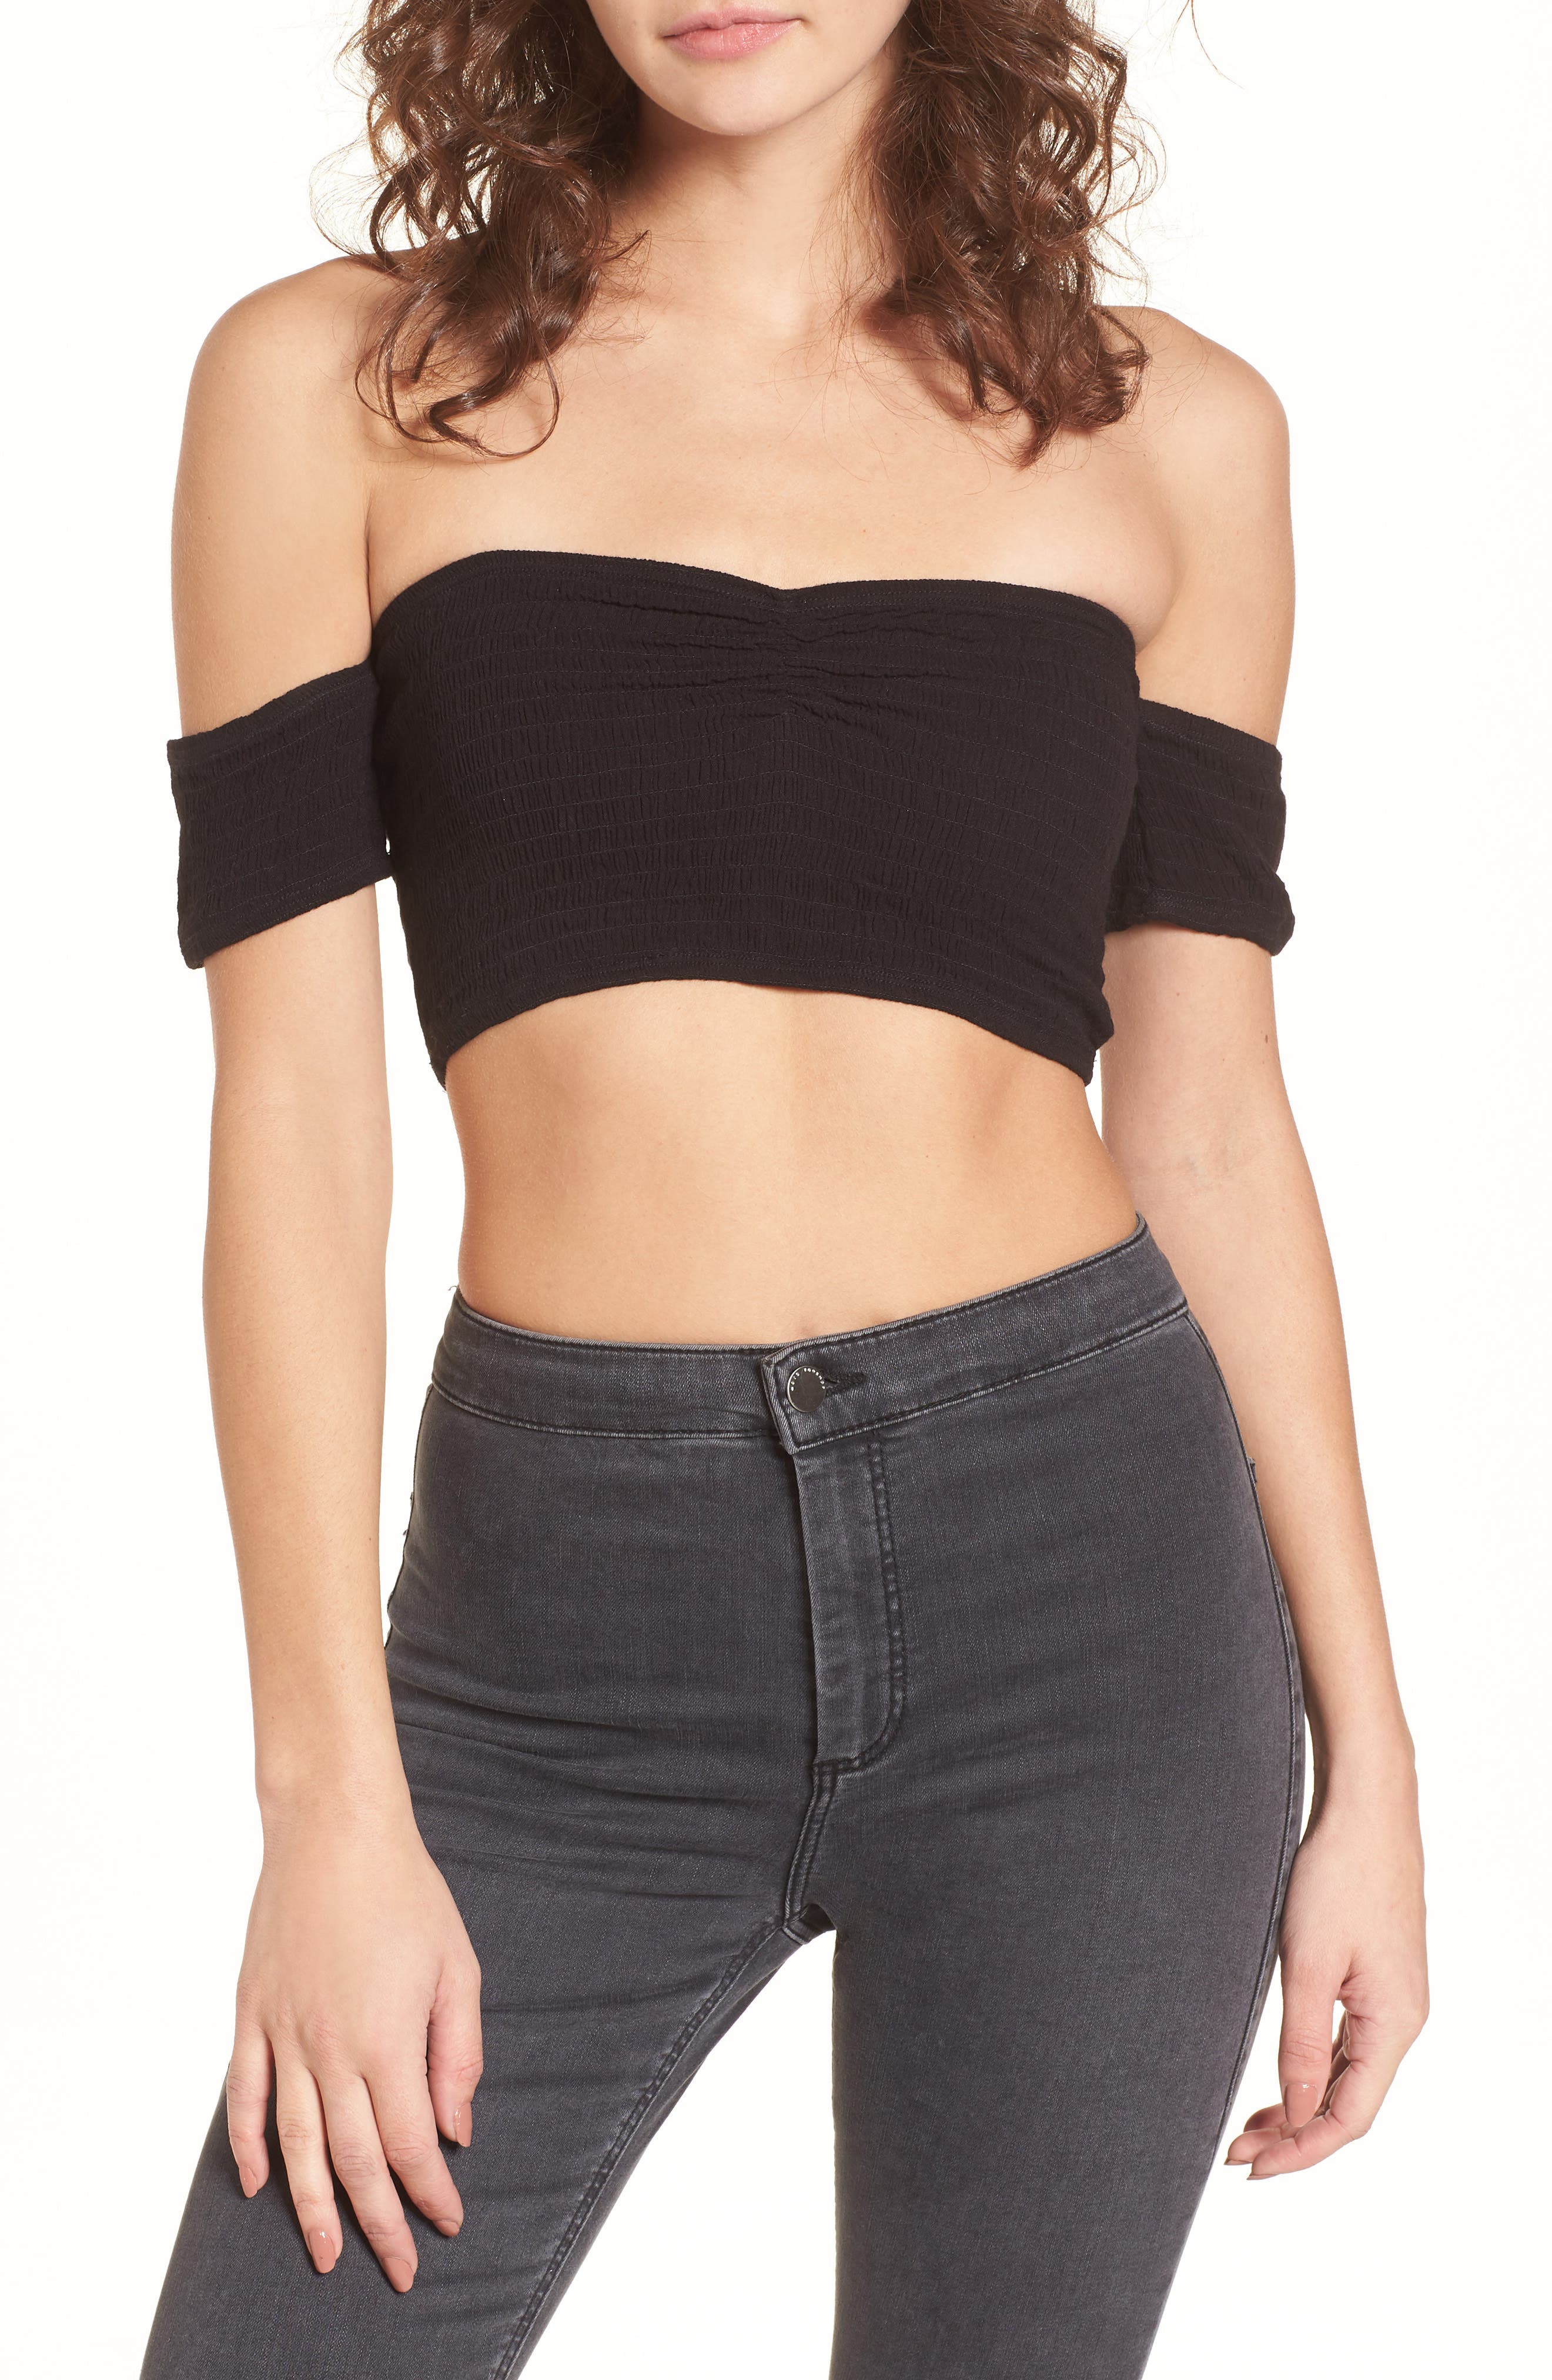 STONE ROW Addicted 2 Me Smocked Crop Top, Main, color, 001